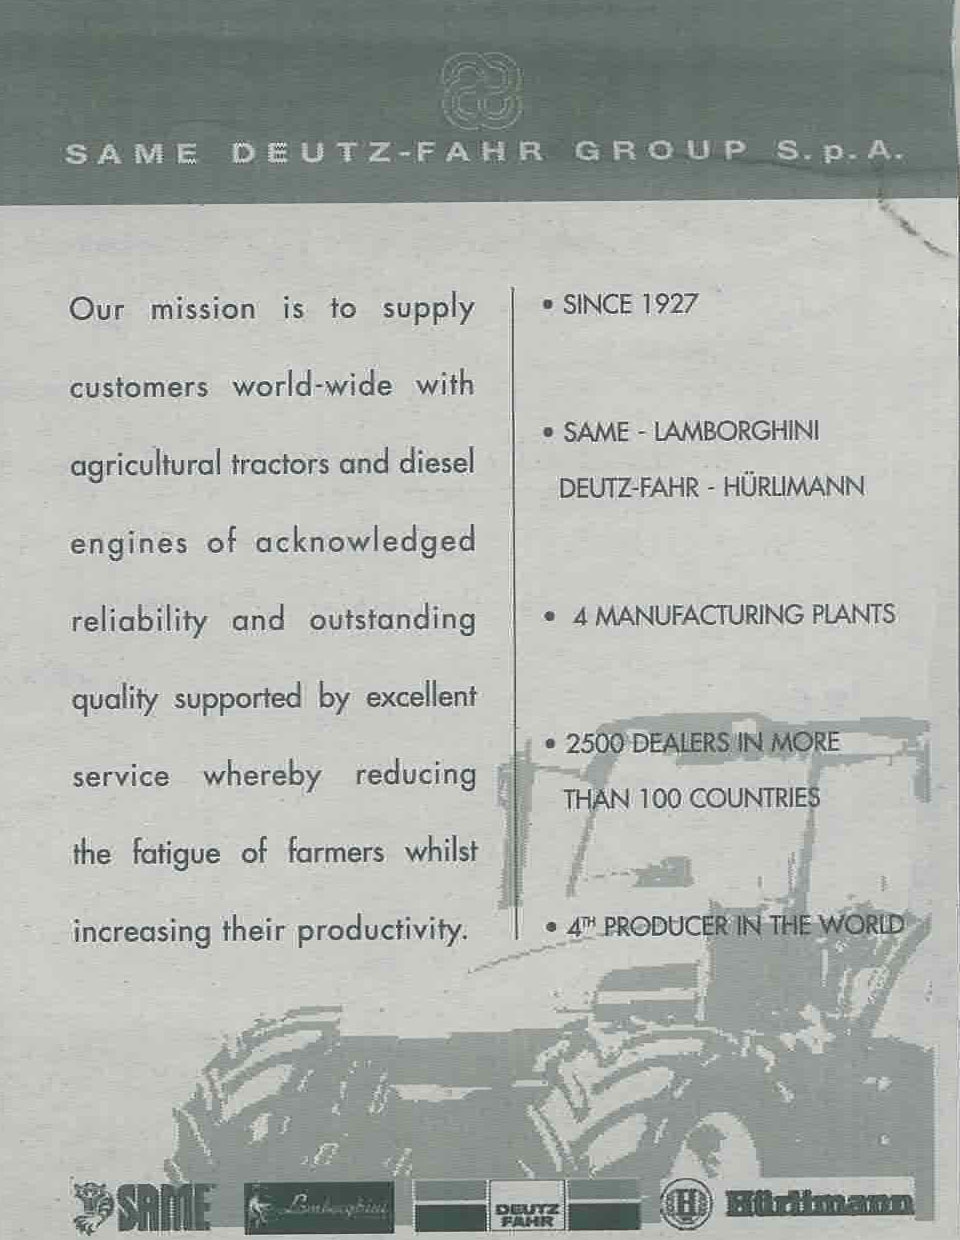 Same Deutz- Fahr Group S.p.a.